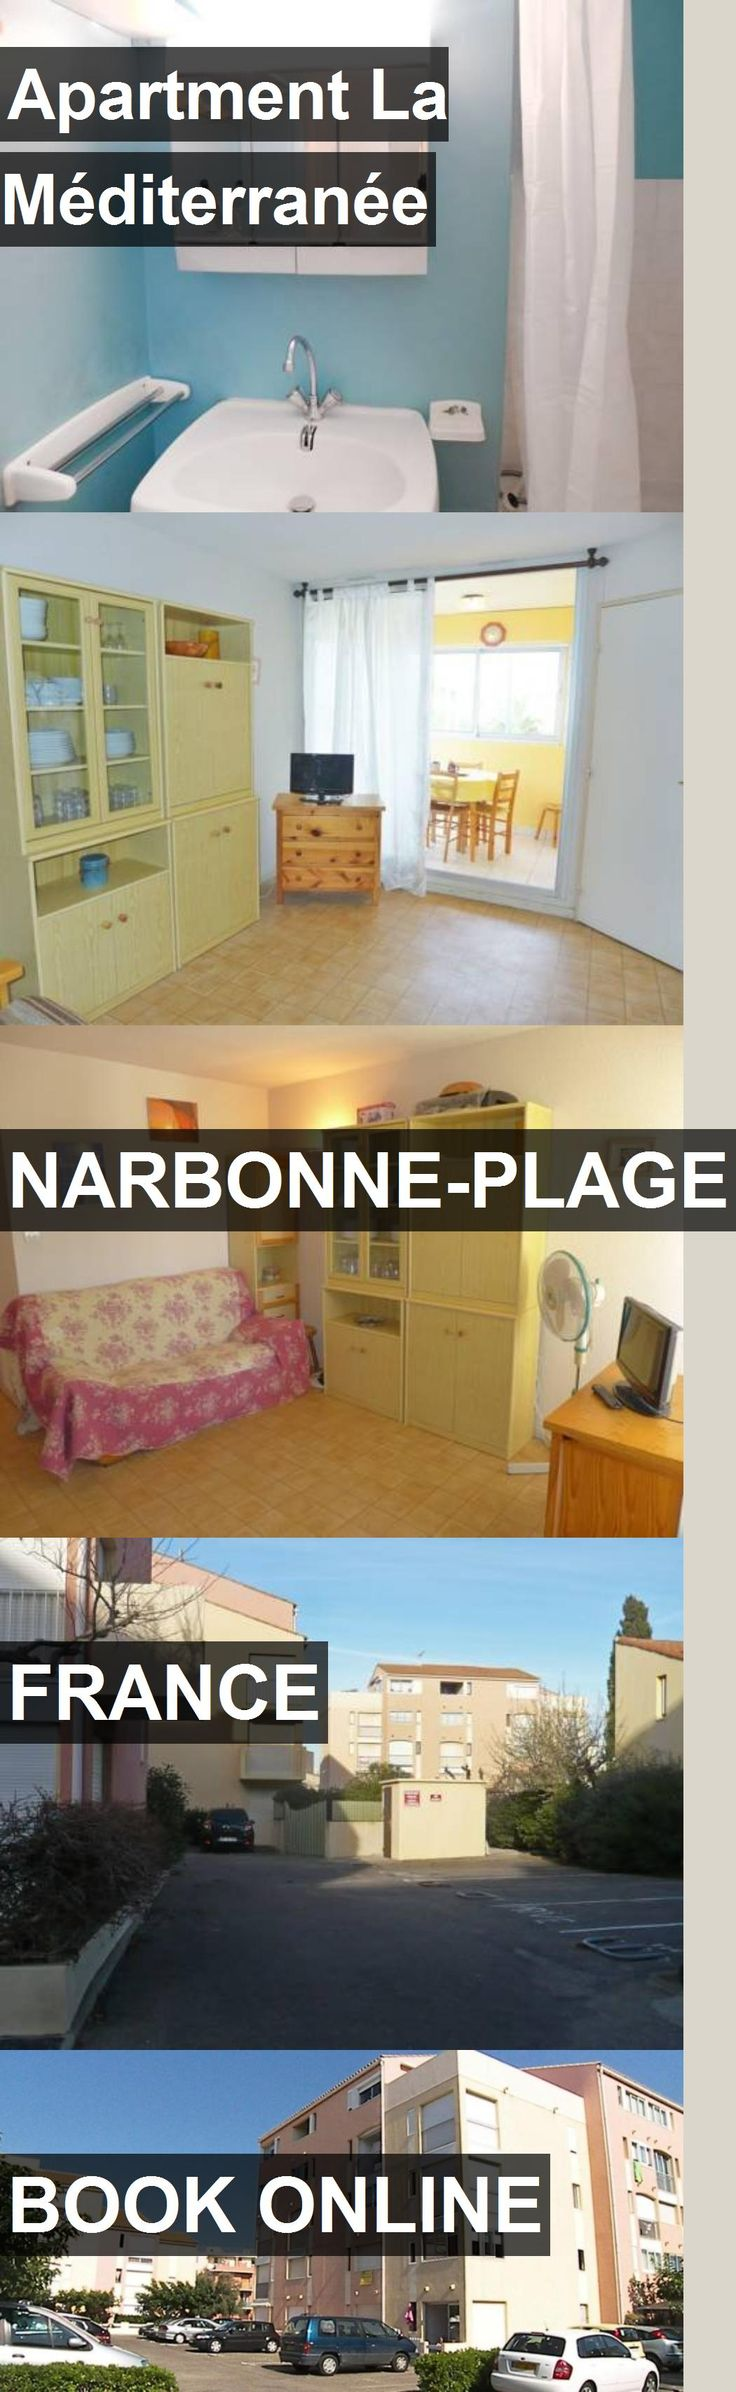 Apartment La Méditerranée in Narbonne-Plage, France. For more information, photos, reviews and best prices please follow the link. #France #Narbonne-Plage #travel #vacation #apartment